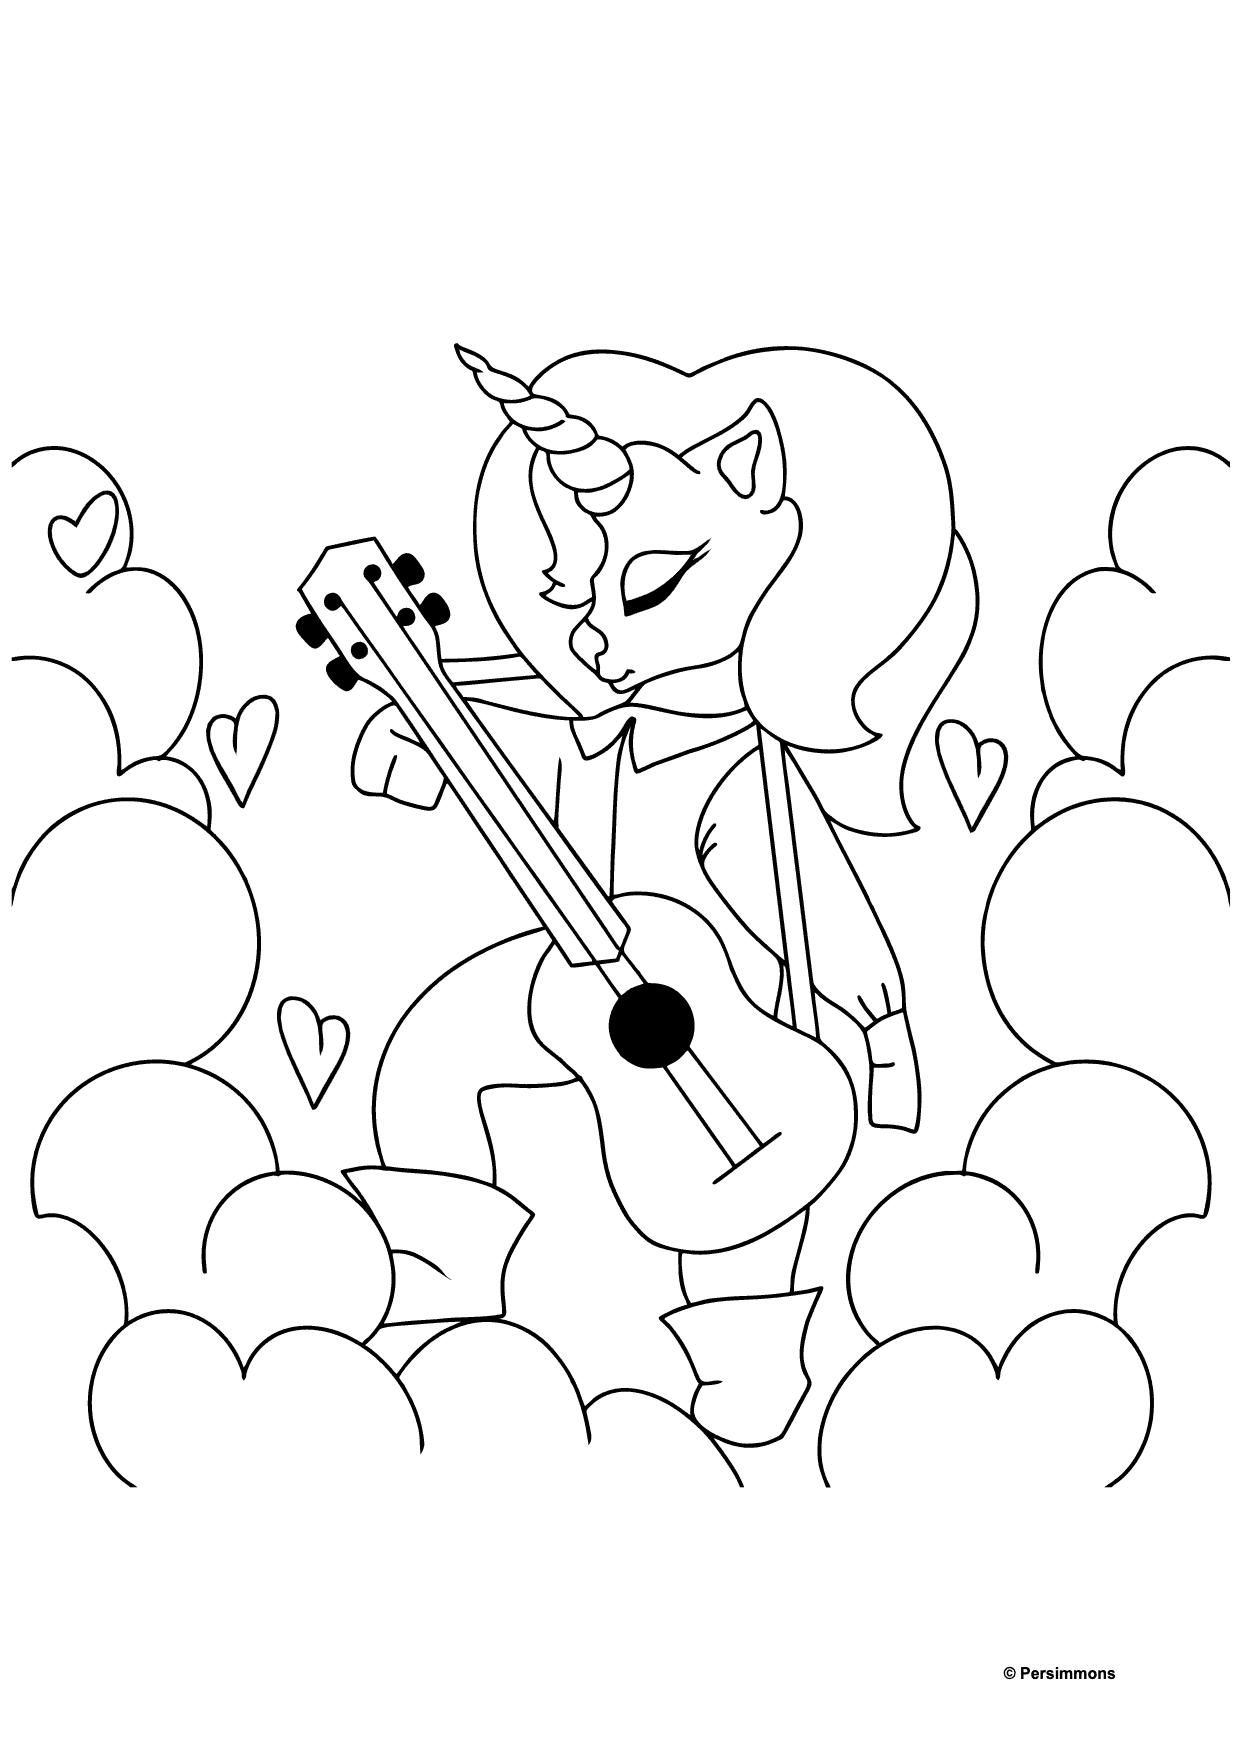 Complex Coloring Page - A Unicorn with a Guitar for Kids